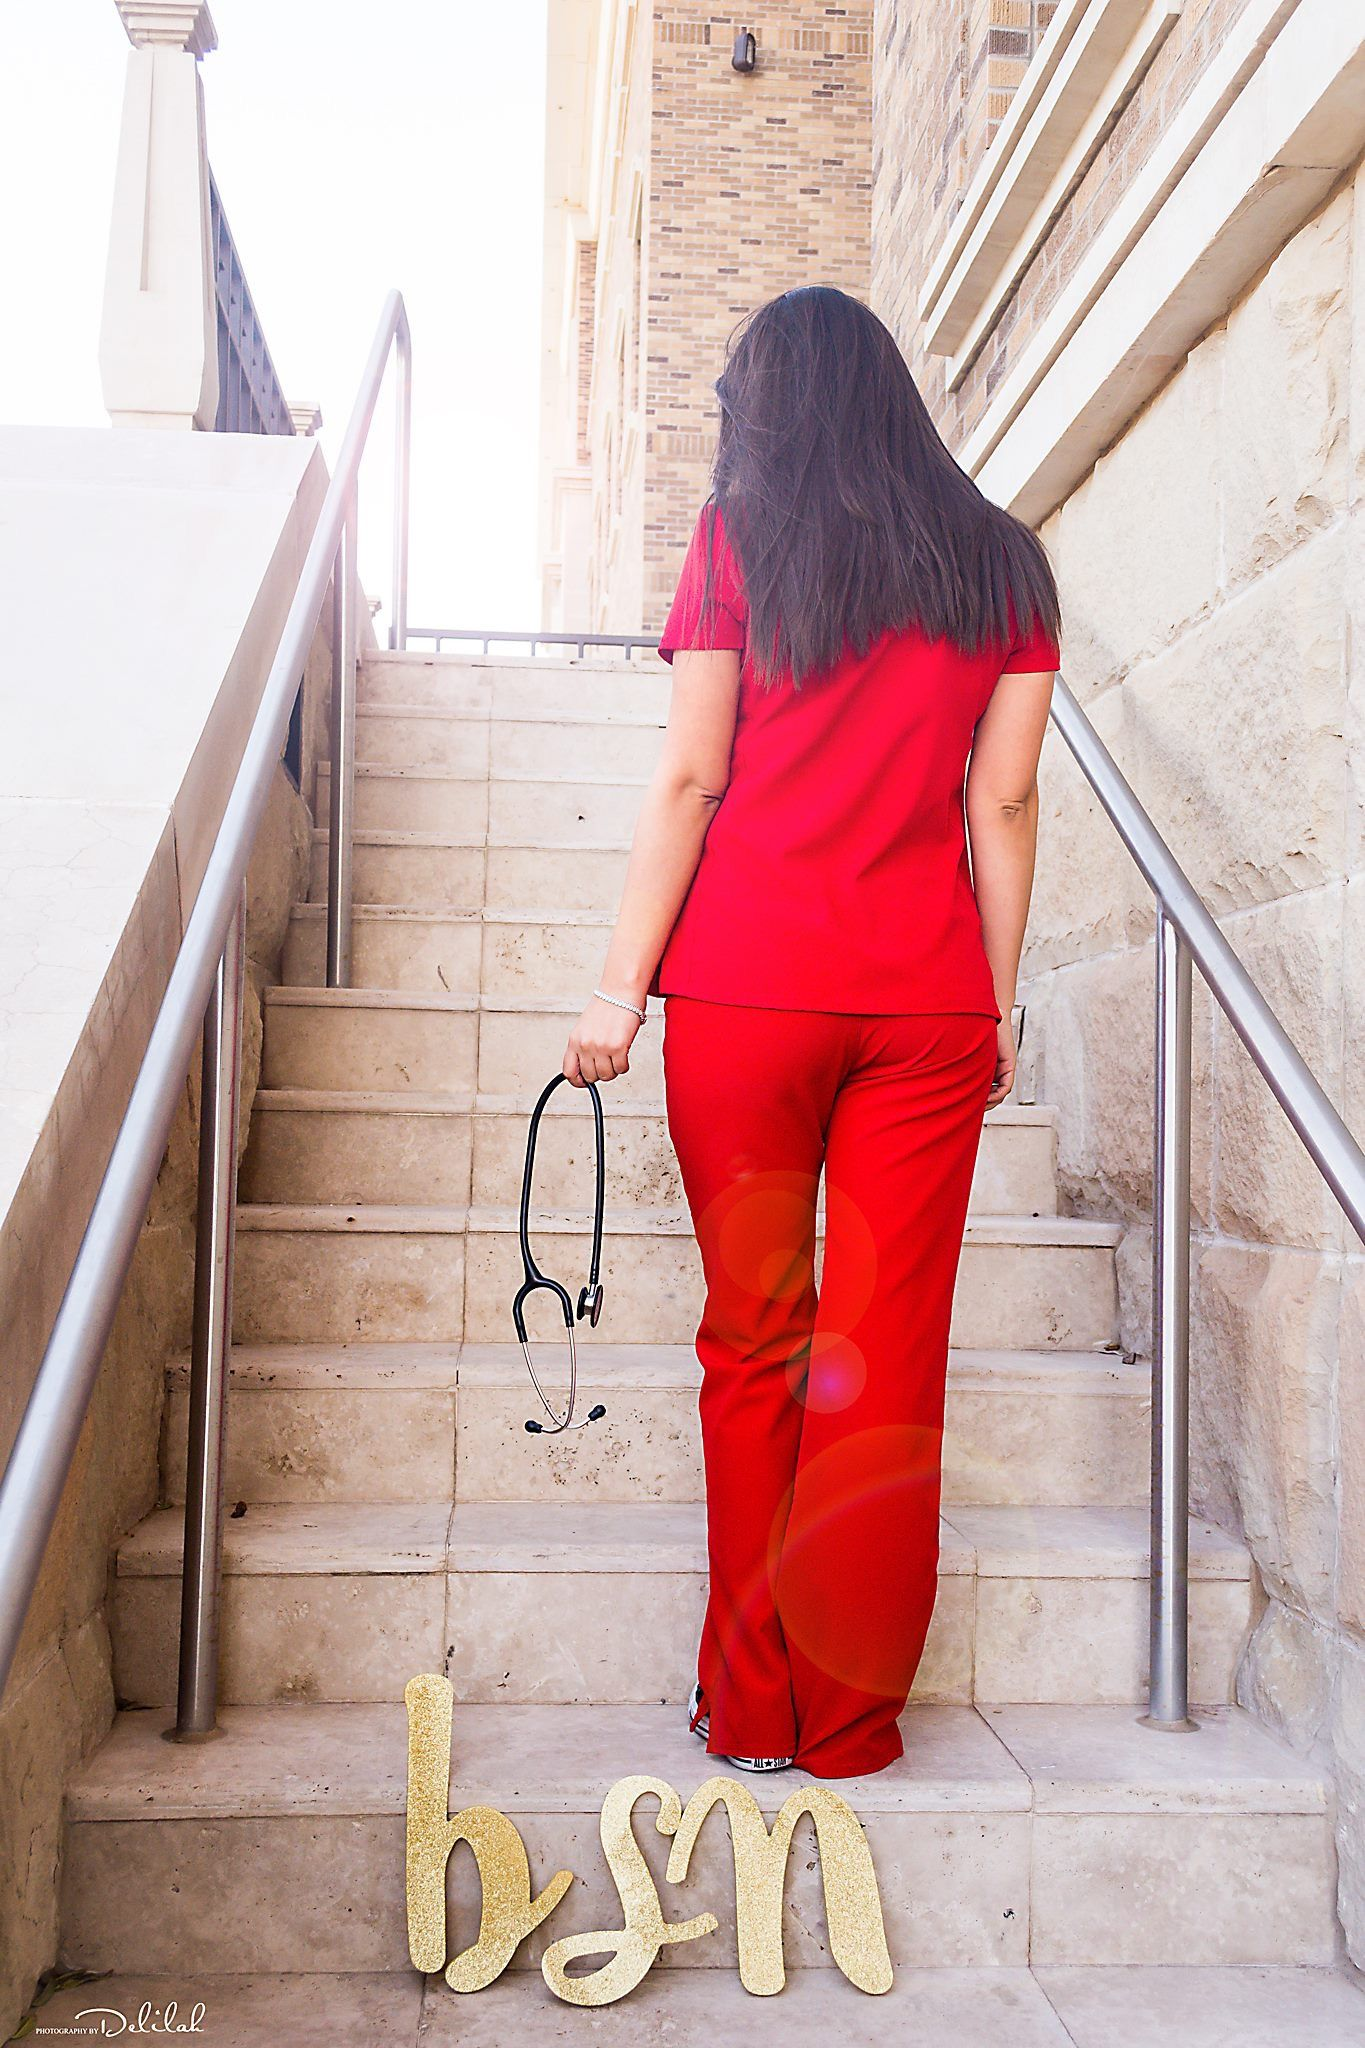 Texas Tech Nursing School Graduation Photoshoot Nurse